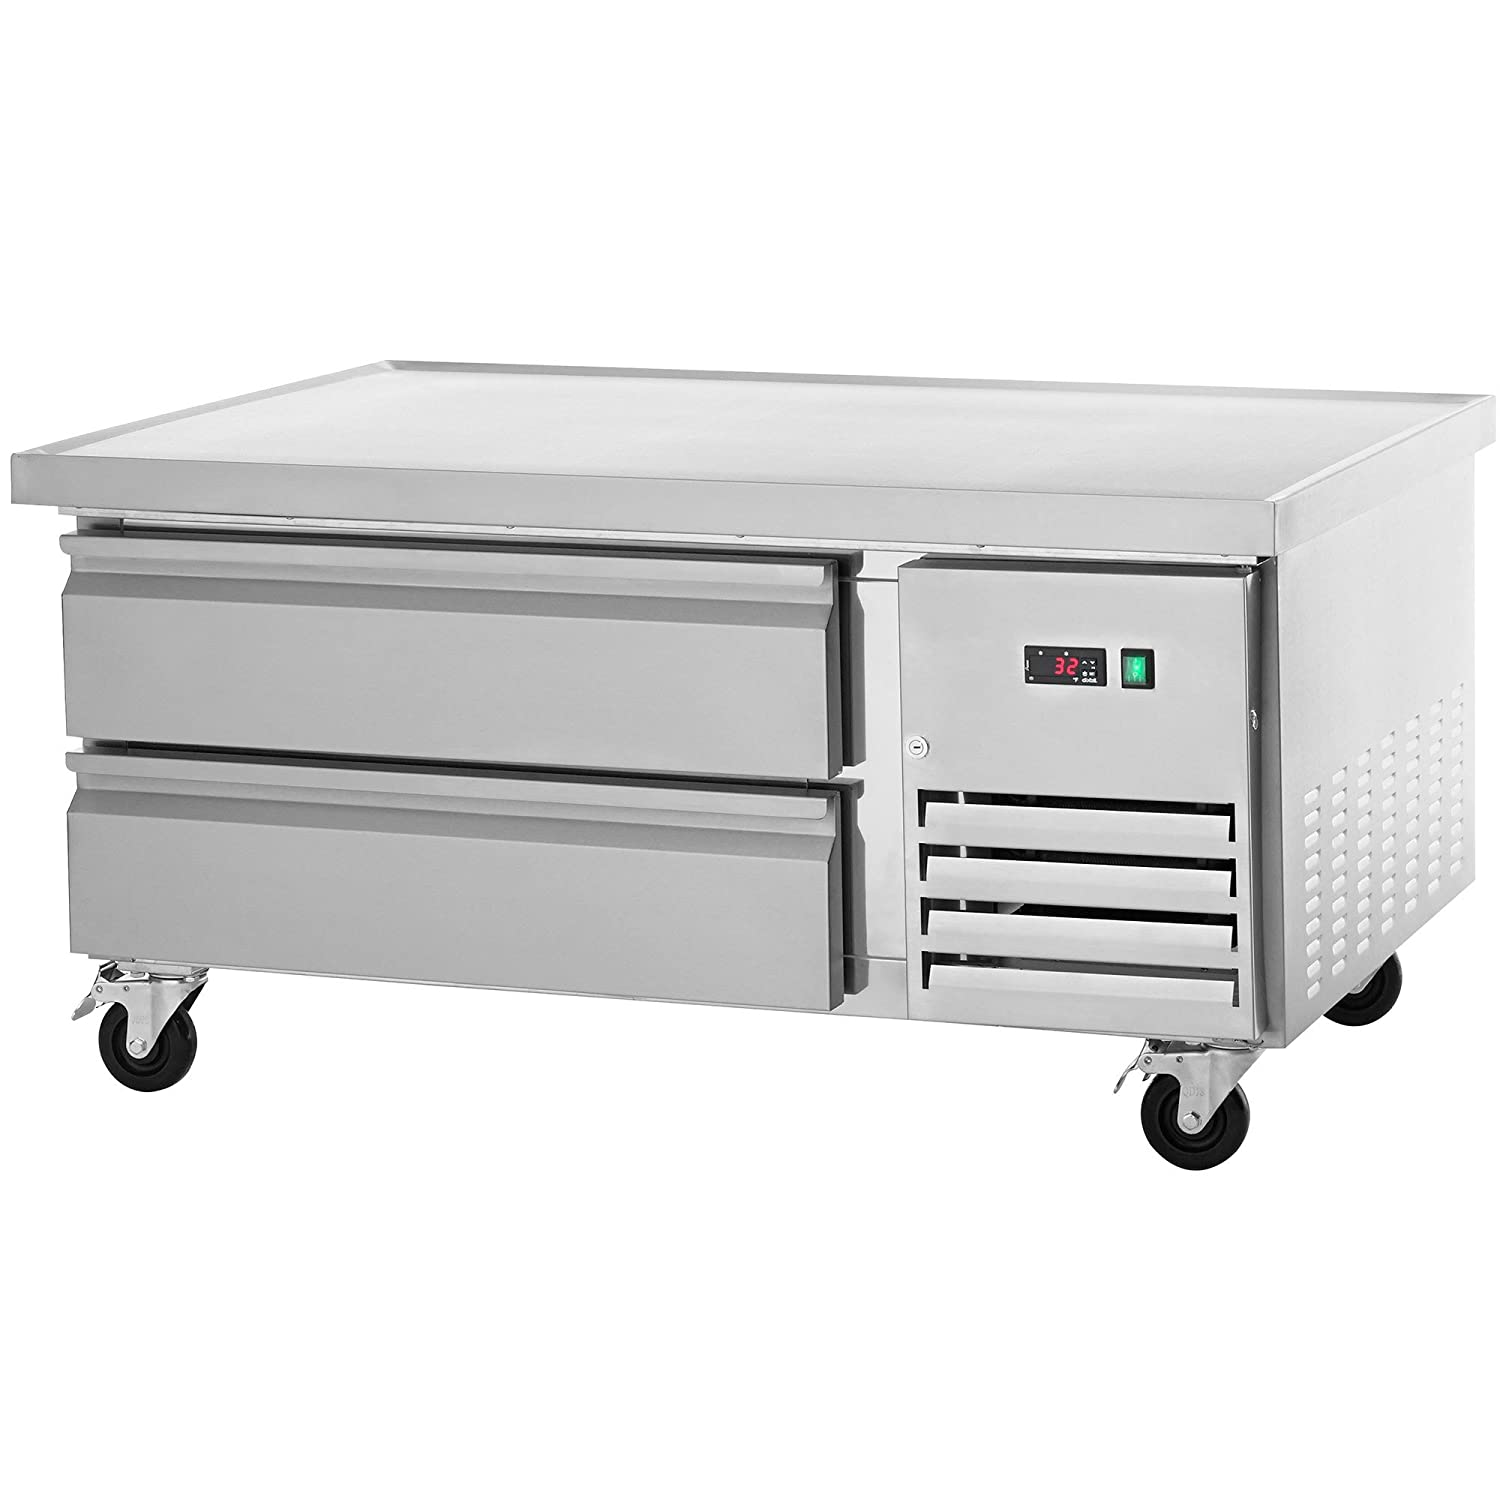 Arctic Free shipping / New Air ARCB48 50-Inch 2-Drawer 115v Chef At the price of surprise Refrigerated Base